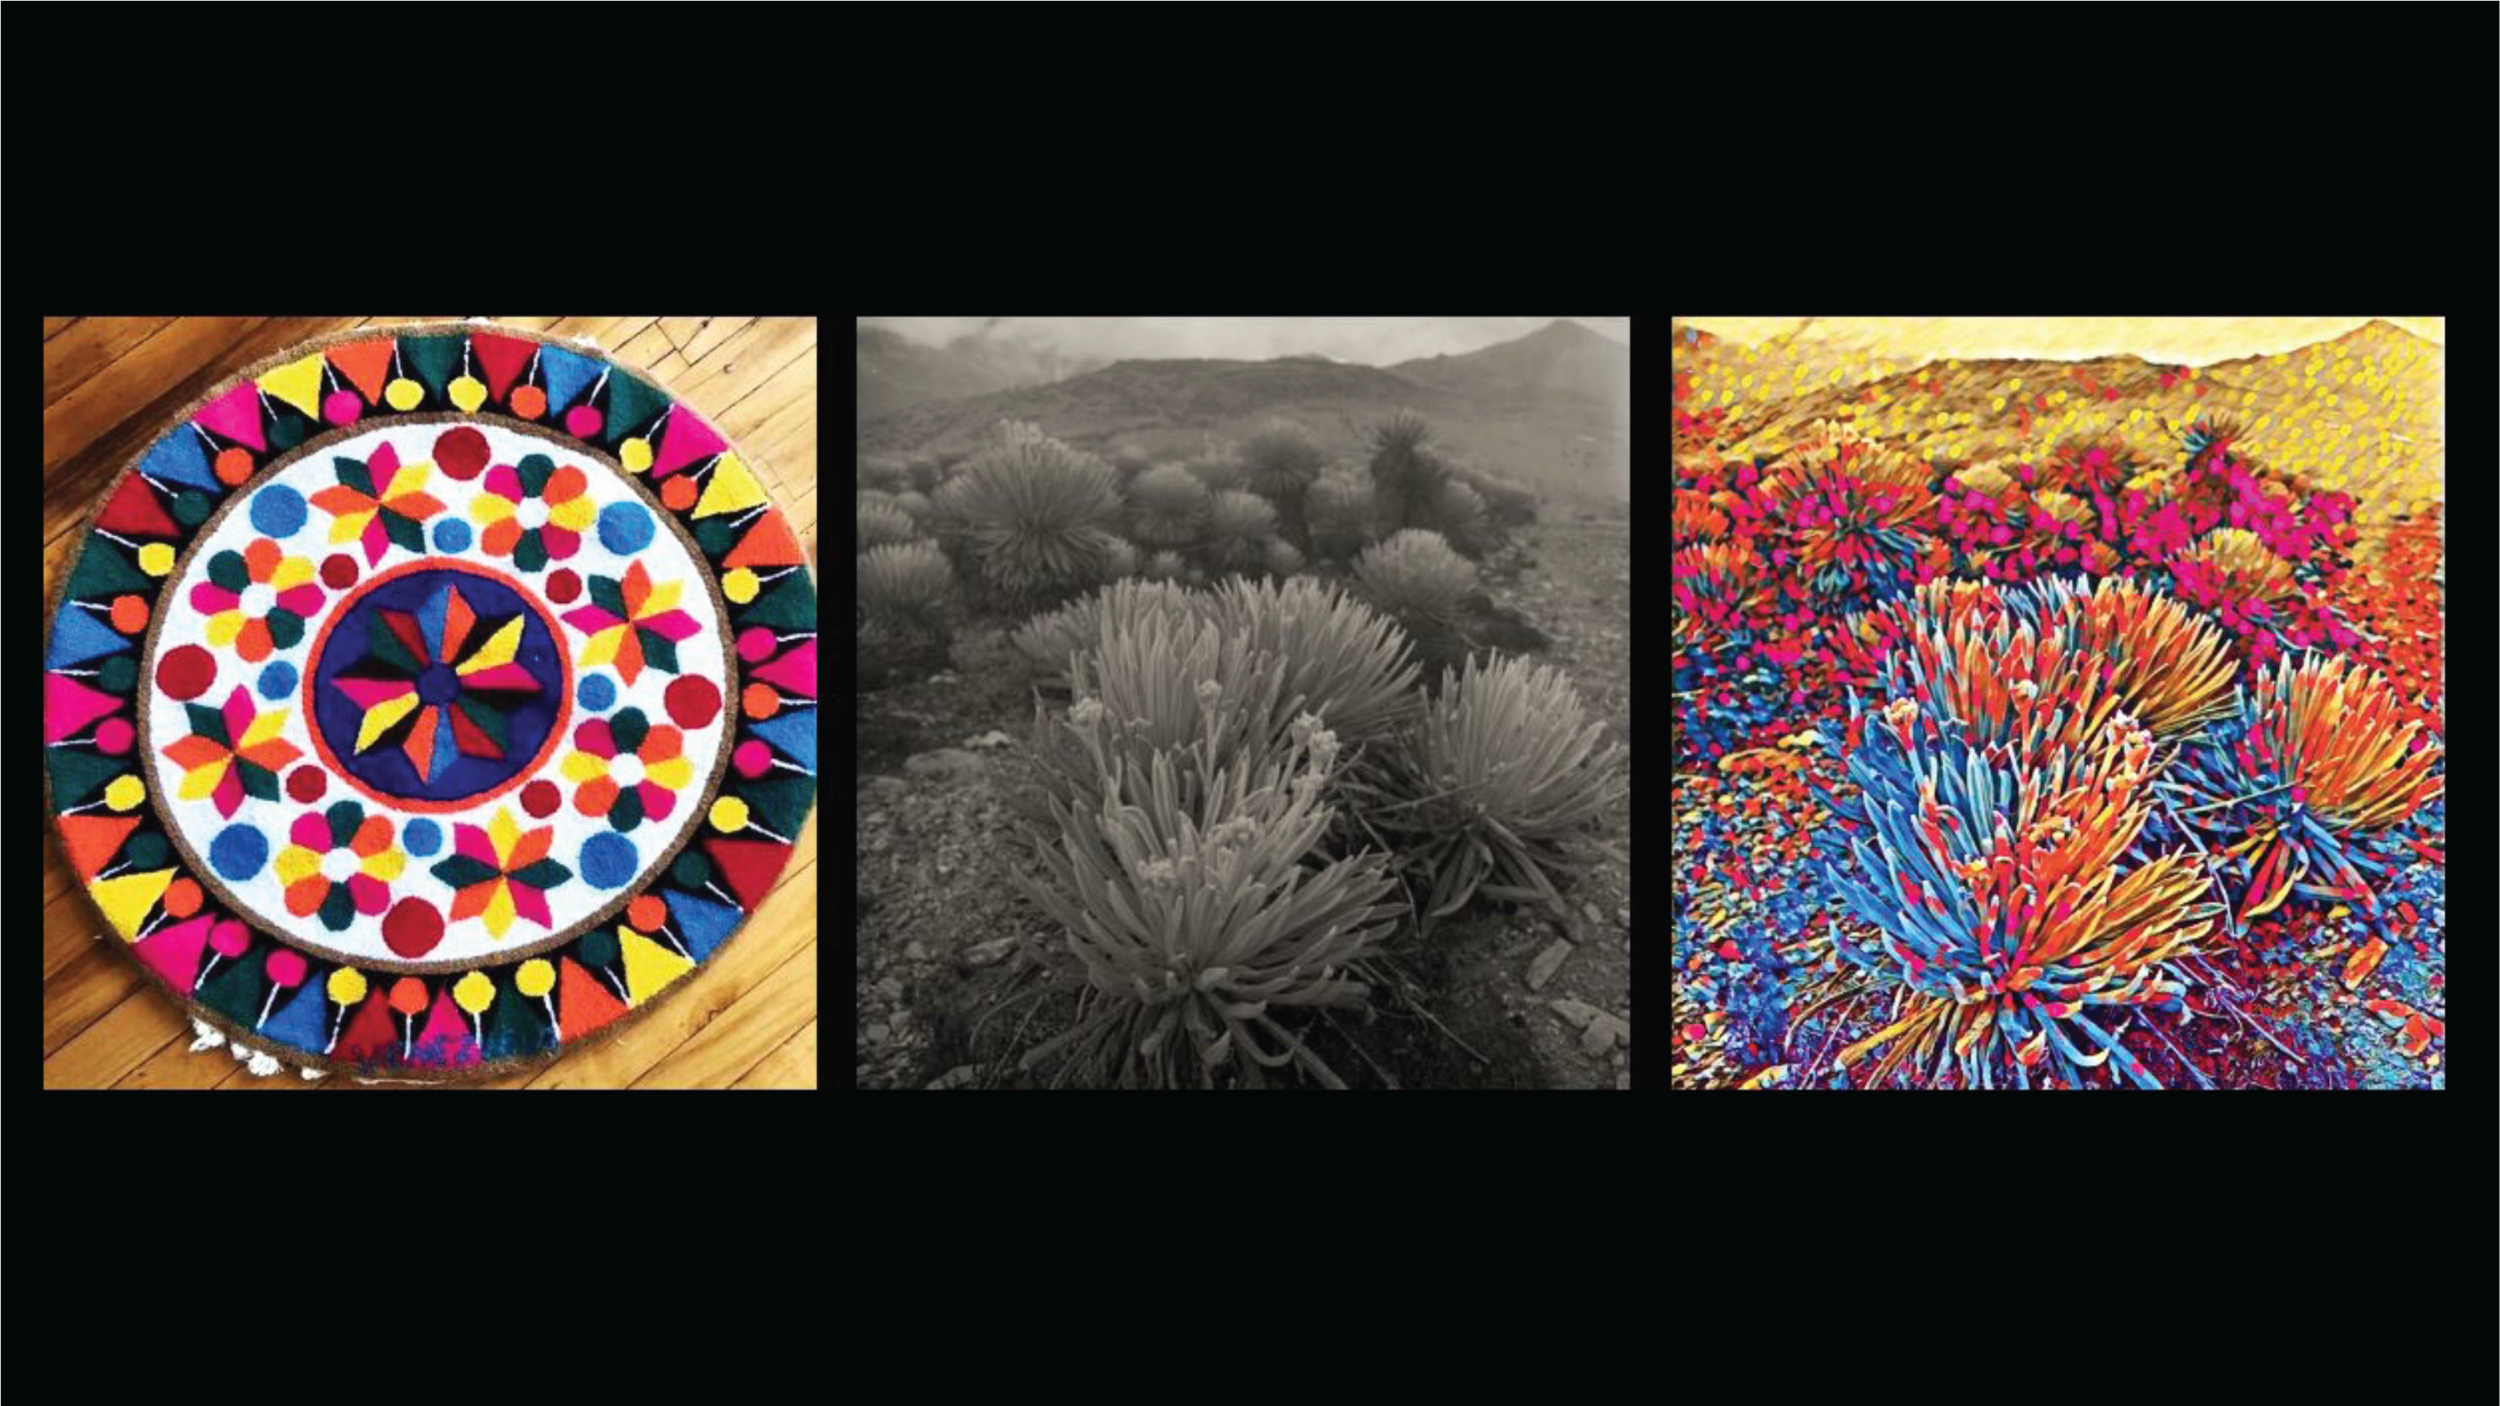 ~   And reflecting on the tension between the past, the present, and what it could mean for the future. I explored machine learning and computer vision techniques to reimagine these photographs. On the left you can see a Wayuu tapestry from the northwestern region of Venezuela. This mandala hung on a wall in our home while I was growing up. I trained a neural network with this photograph to create a model that then was used to create a new stylized, colorful image - what you see on the far right. I started to think of this process as a form of alchemy, a way to transmute my anxieties about Venezuela…